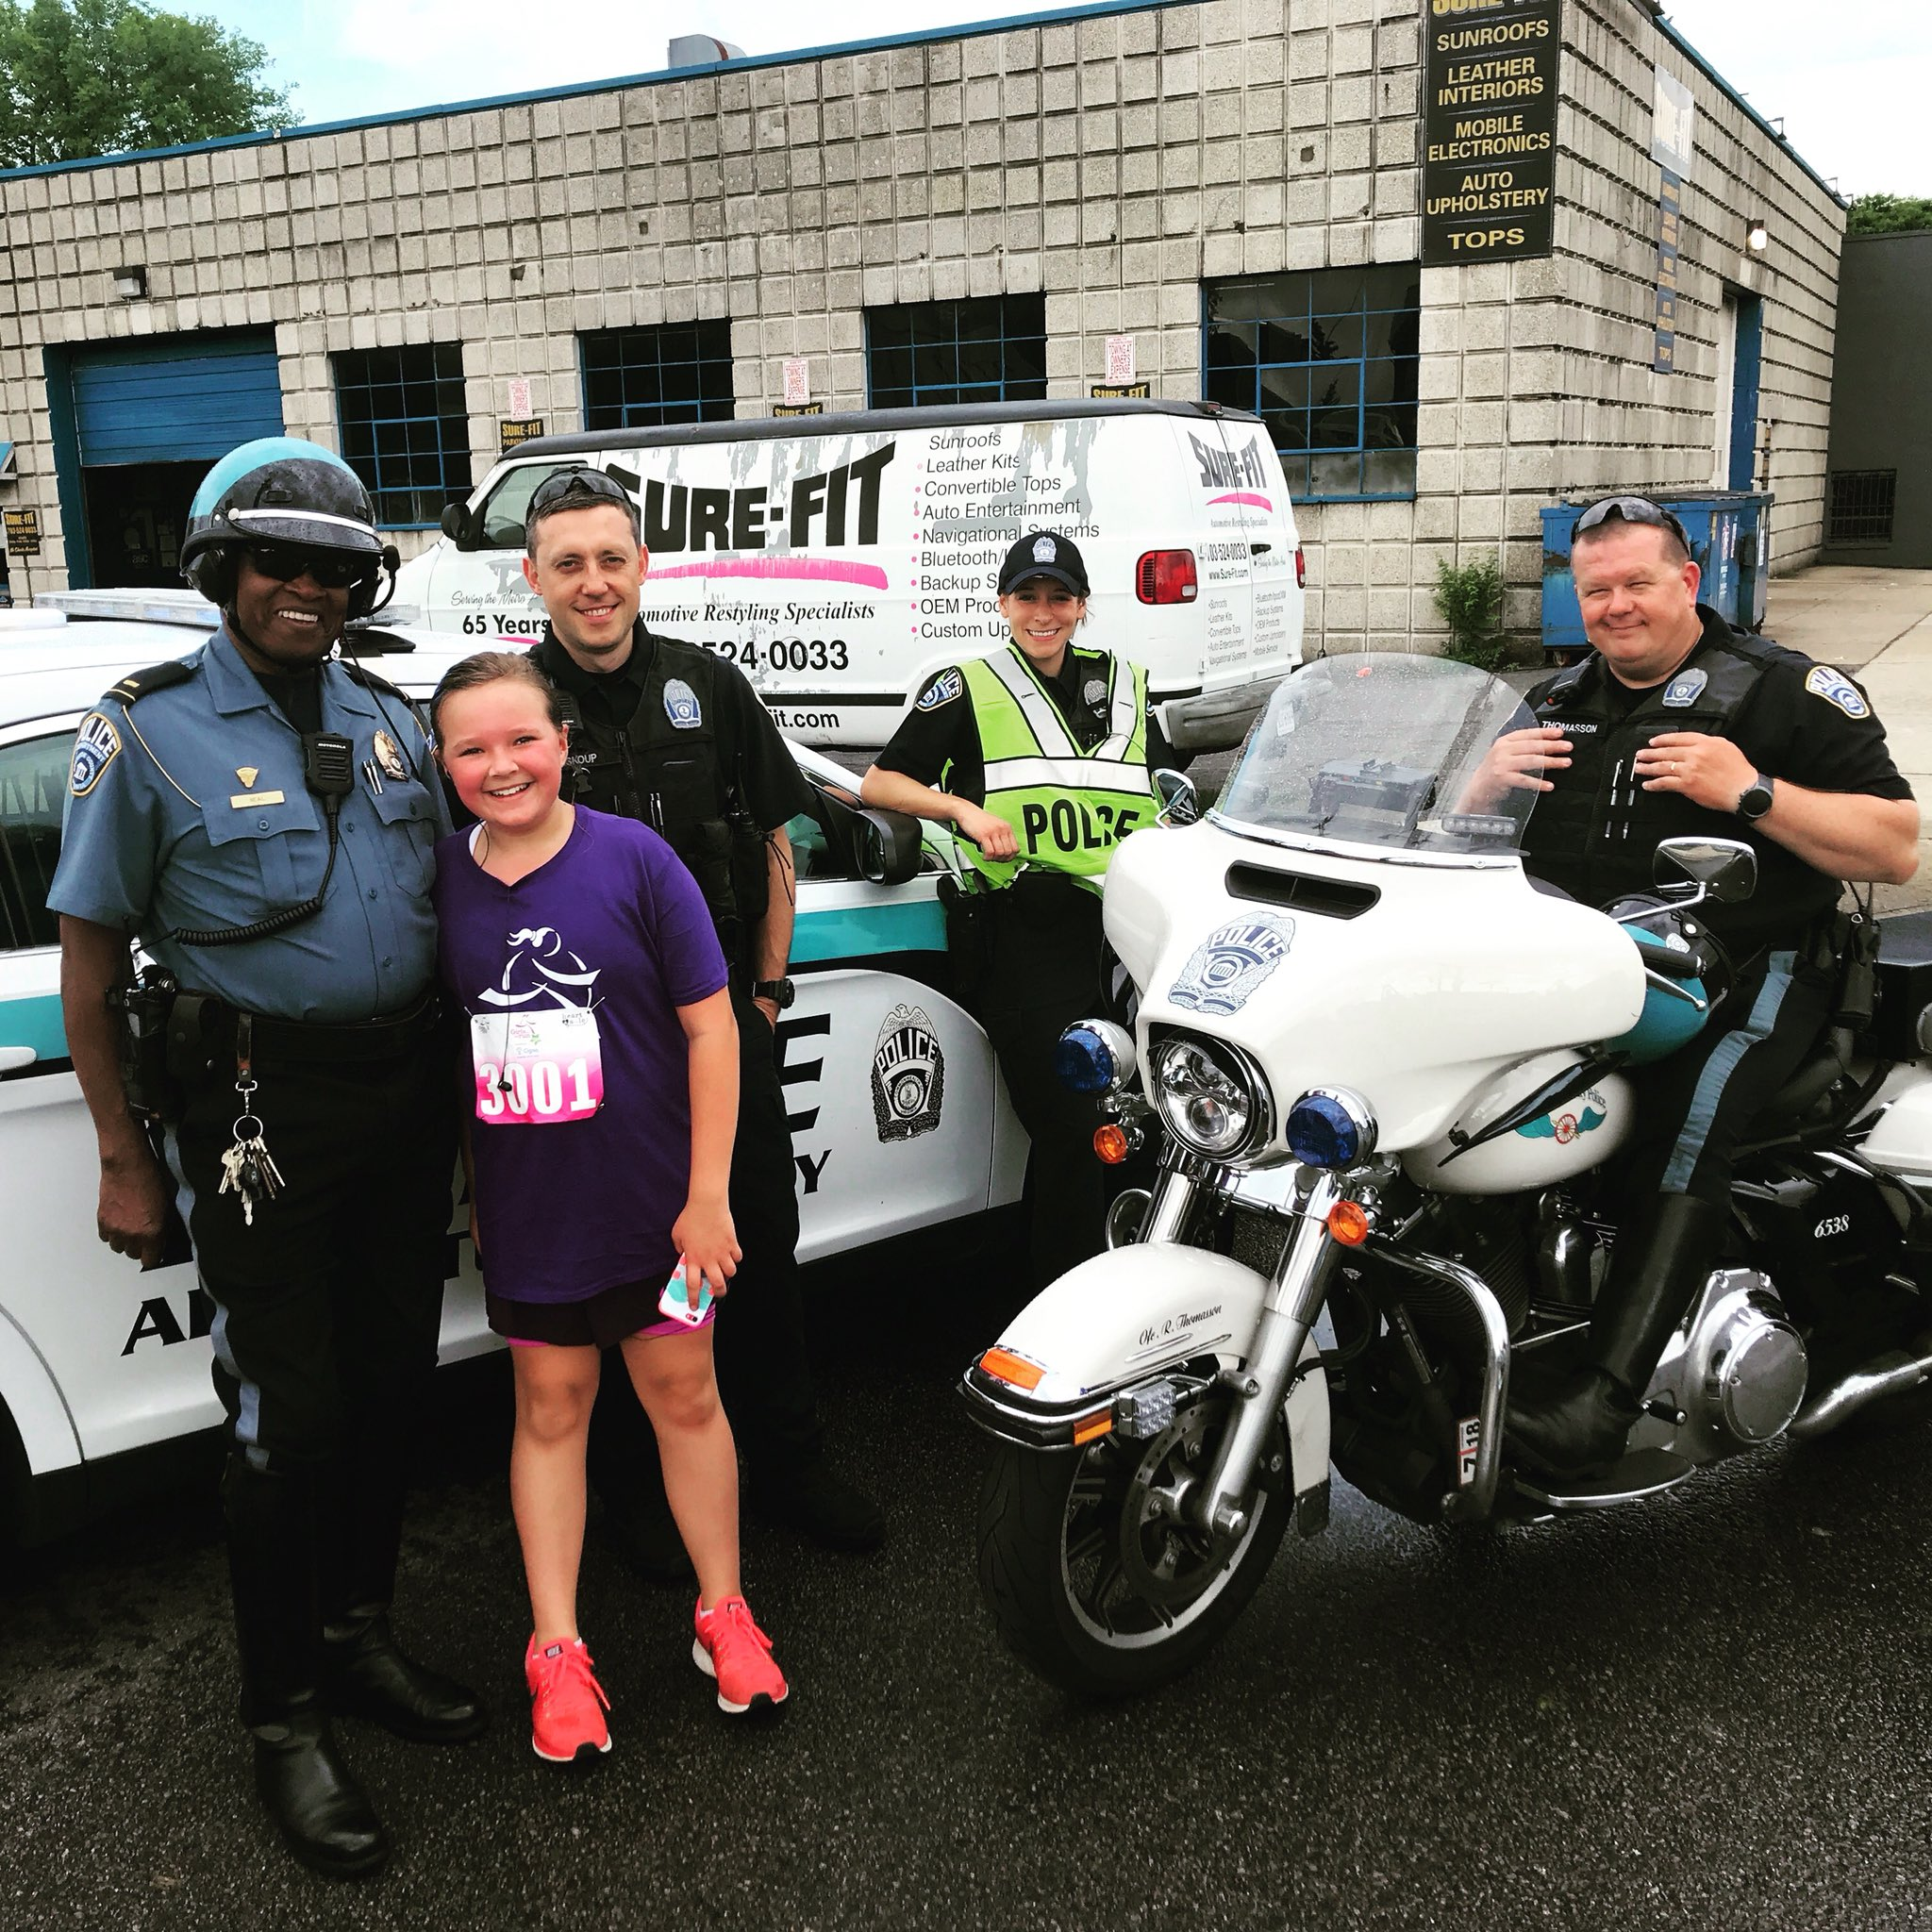 Poppy Macdonald On Twitter Thanks Arlingtonvapd For Supporting